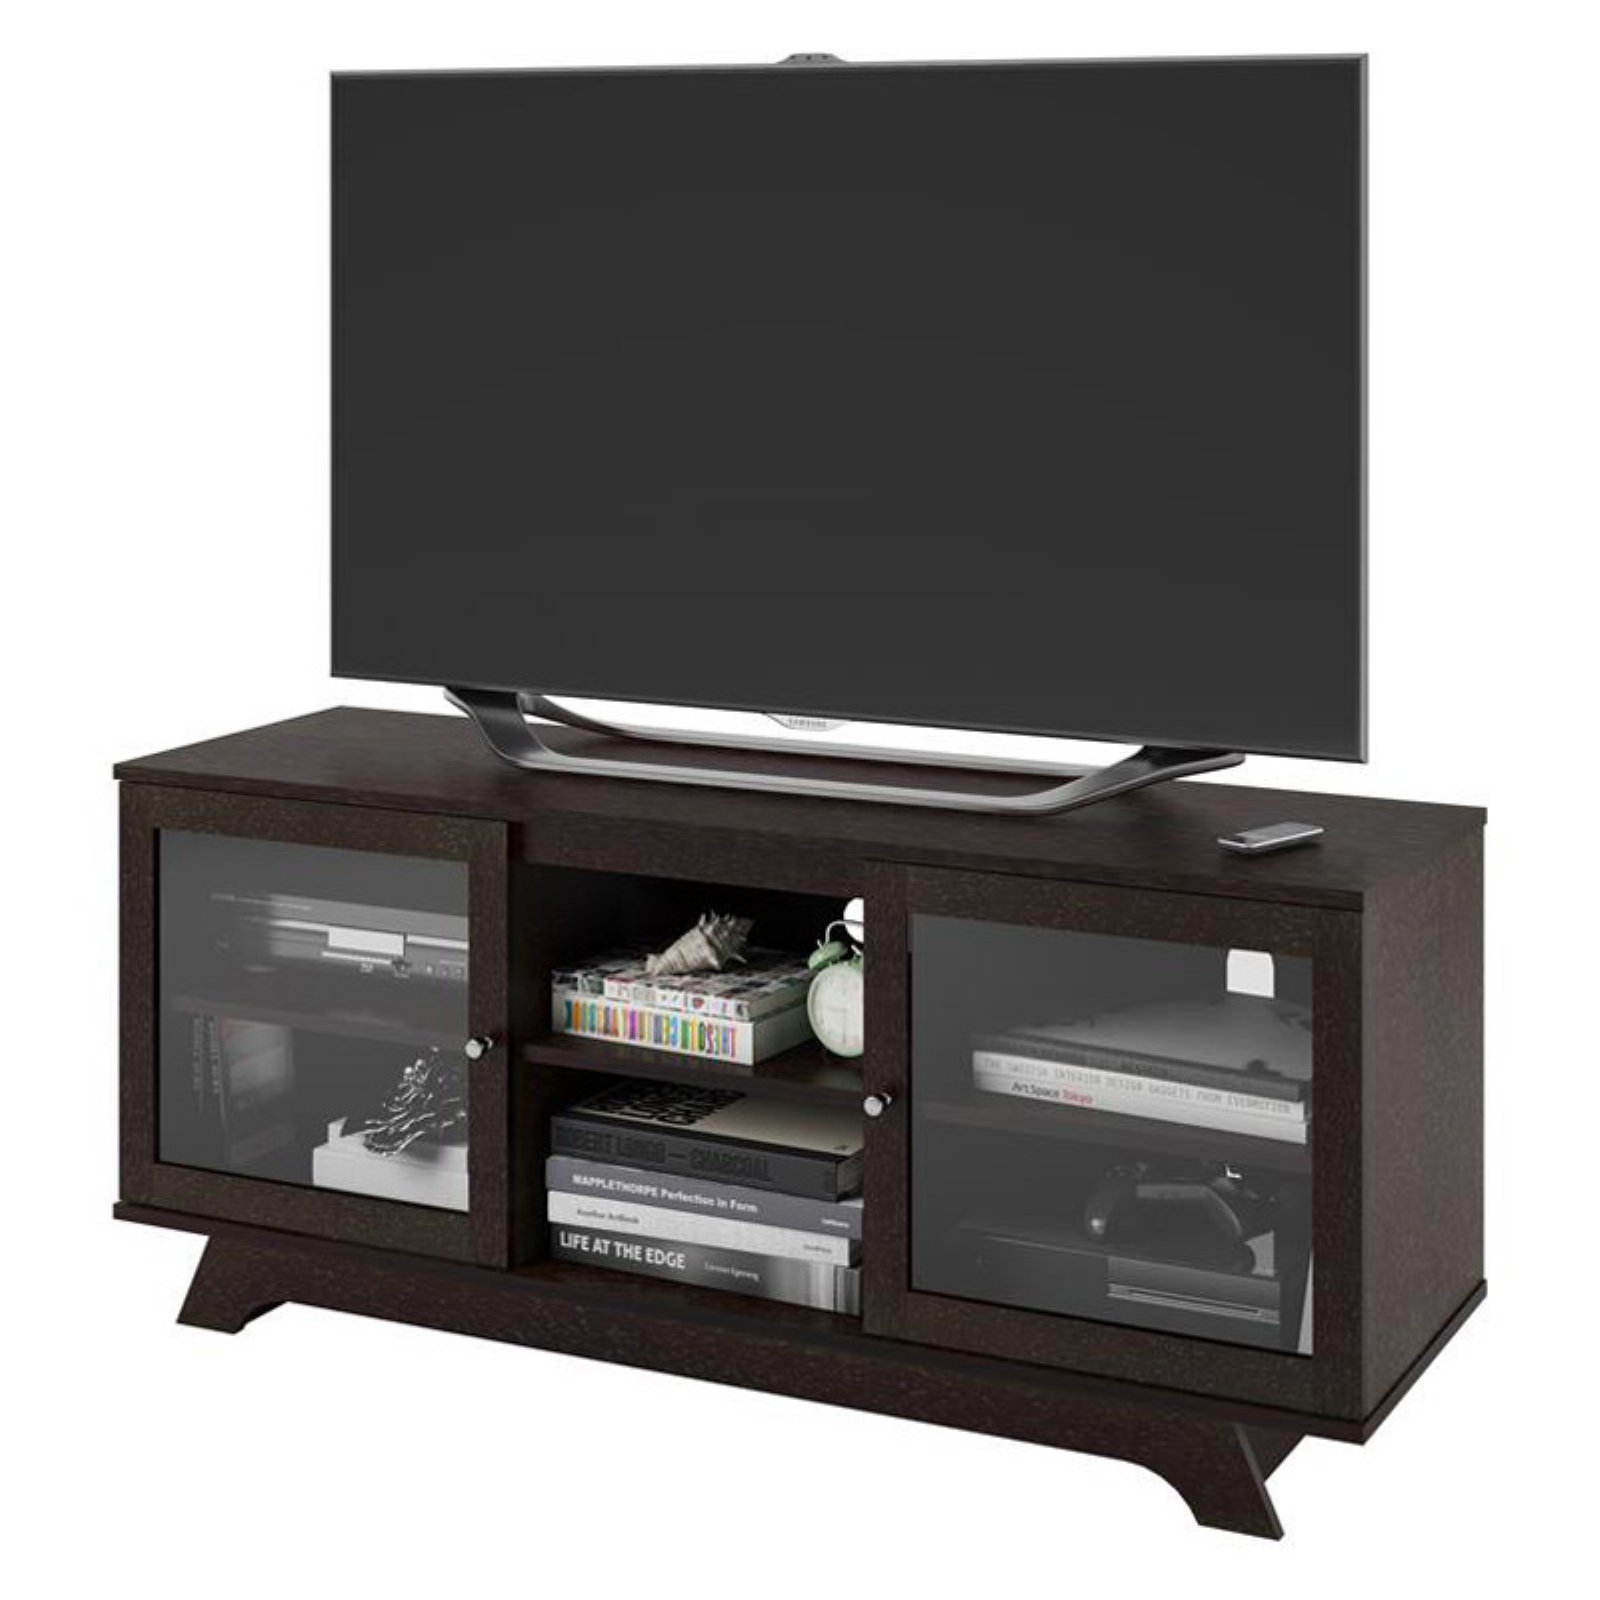 "Ameriwood Home Englewood TV Stand for TVs up to 55"", Espresso"